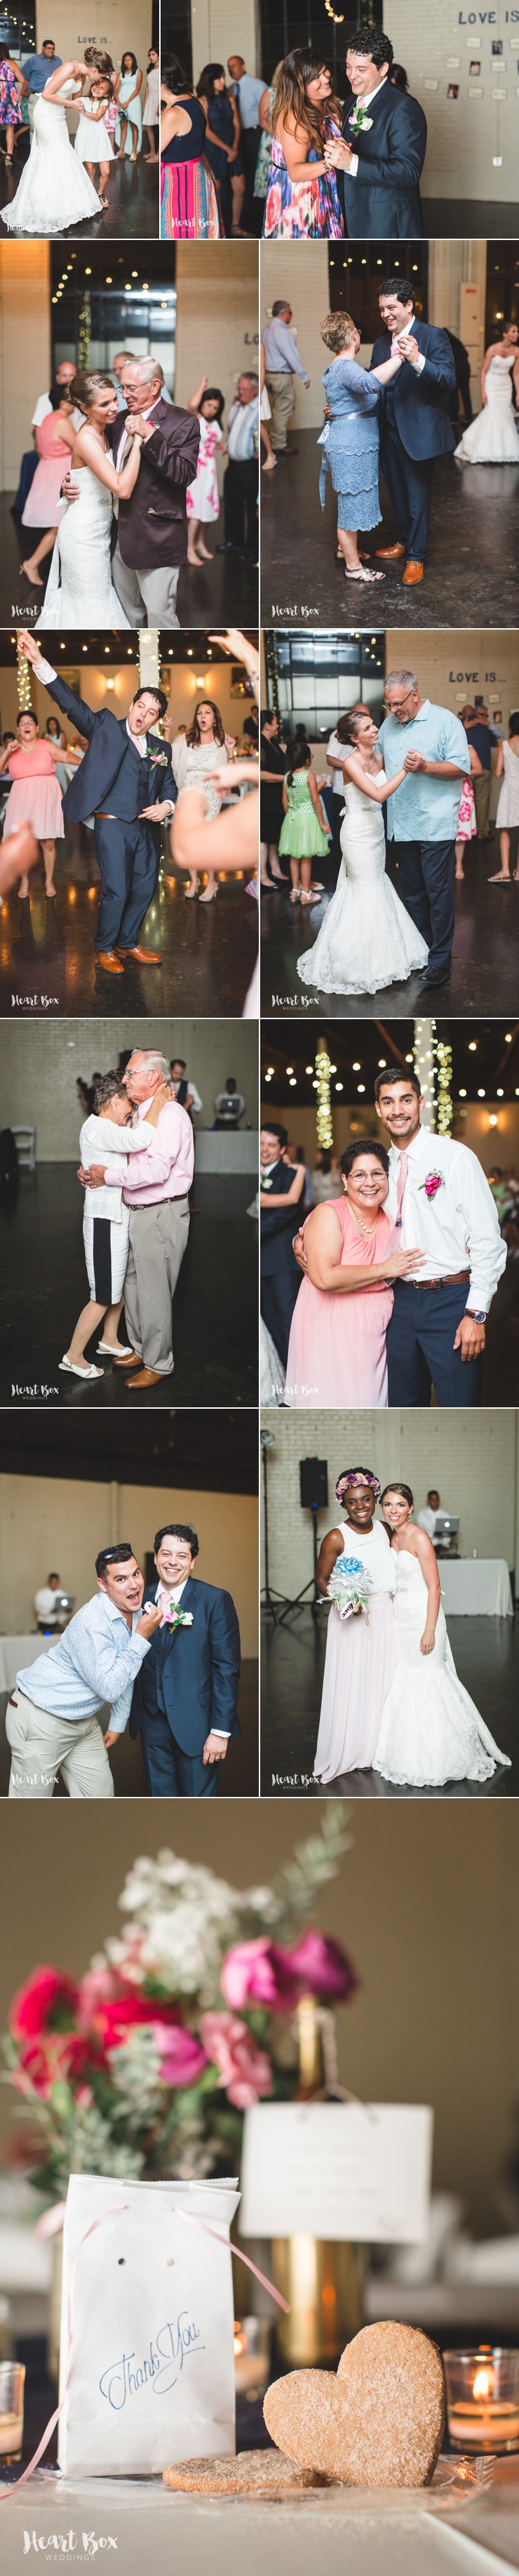 Towns Wedding Blog Collages 15.jpg